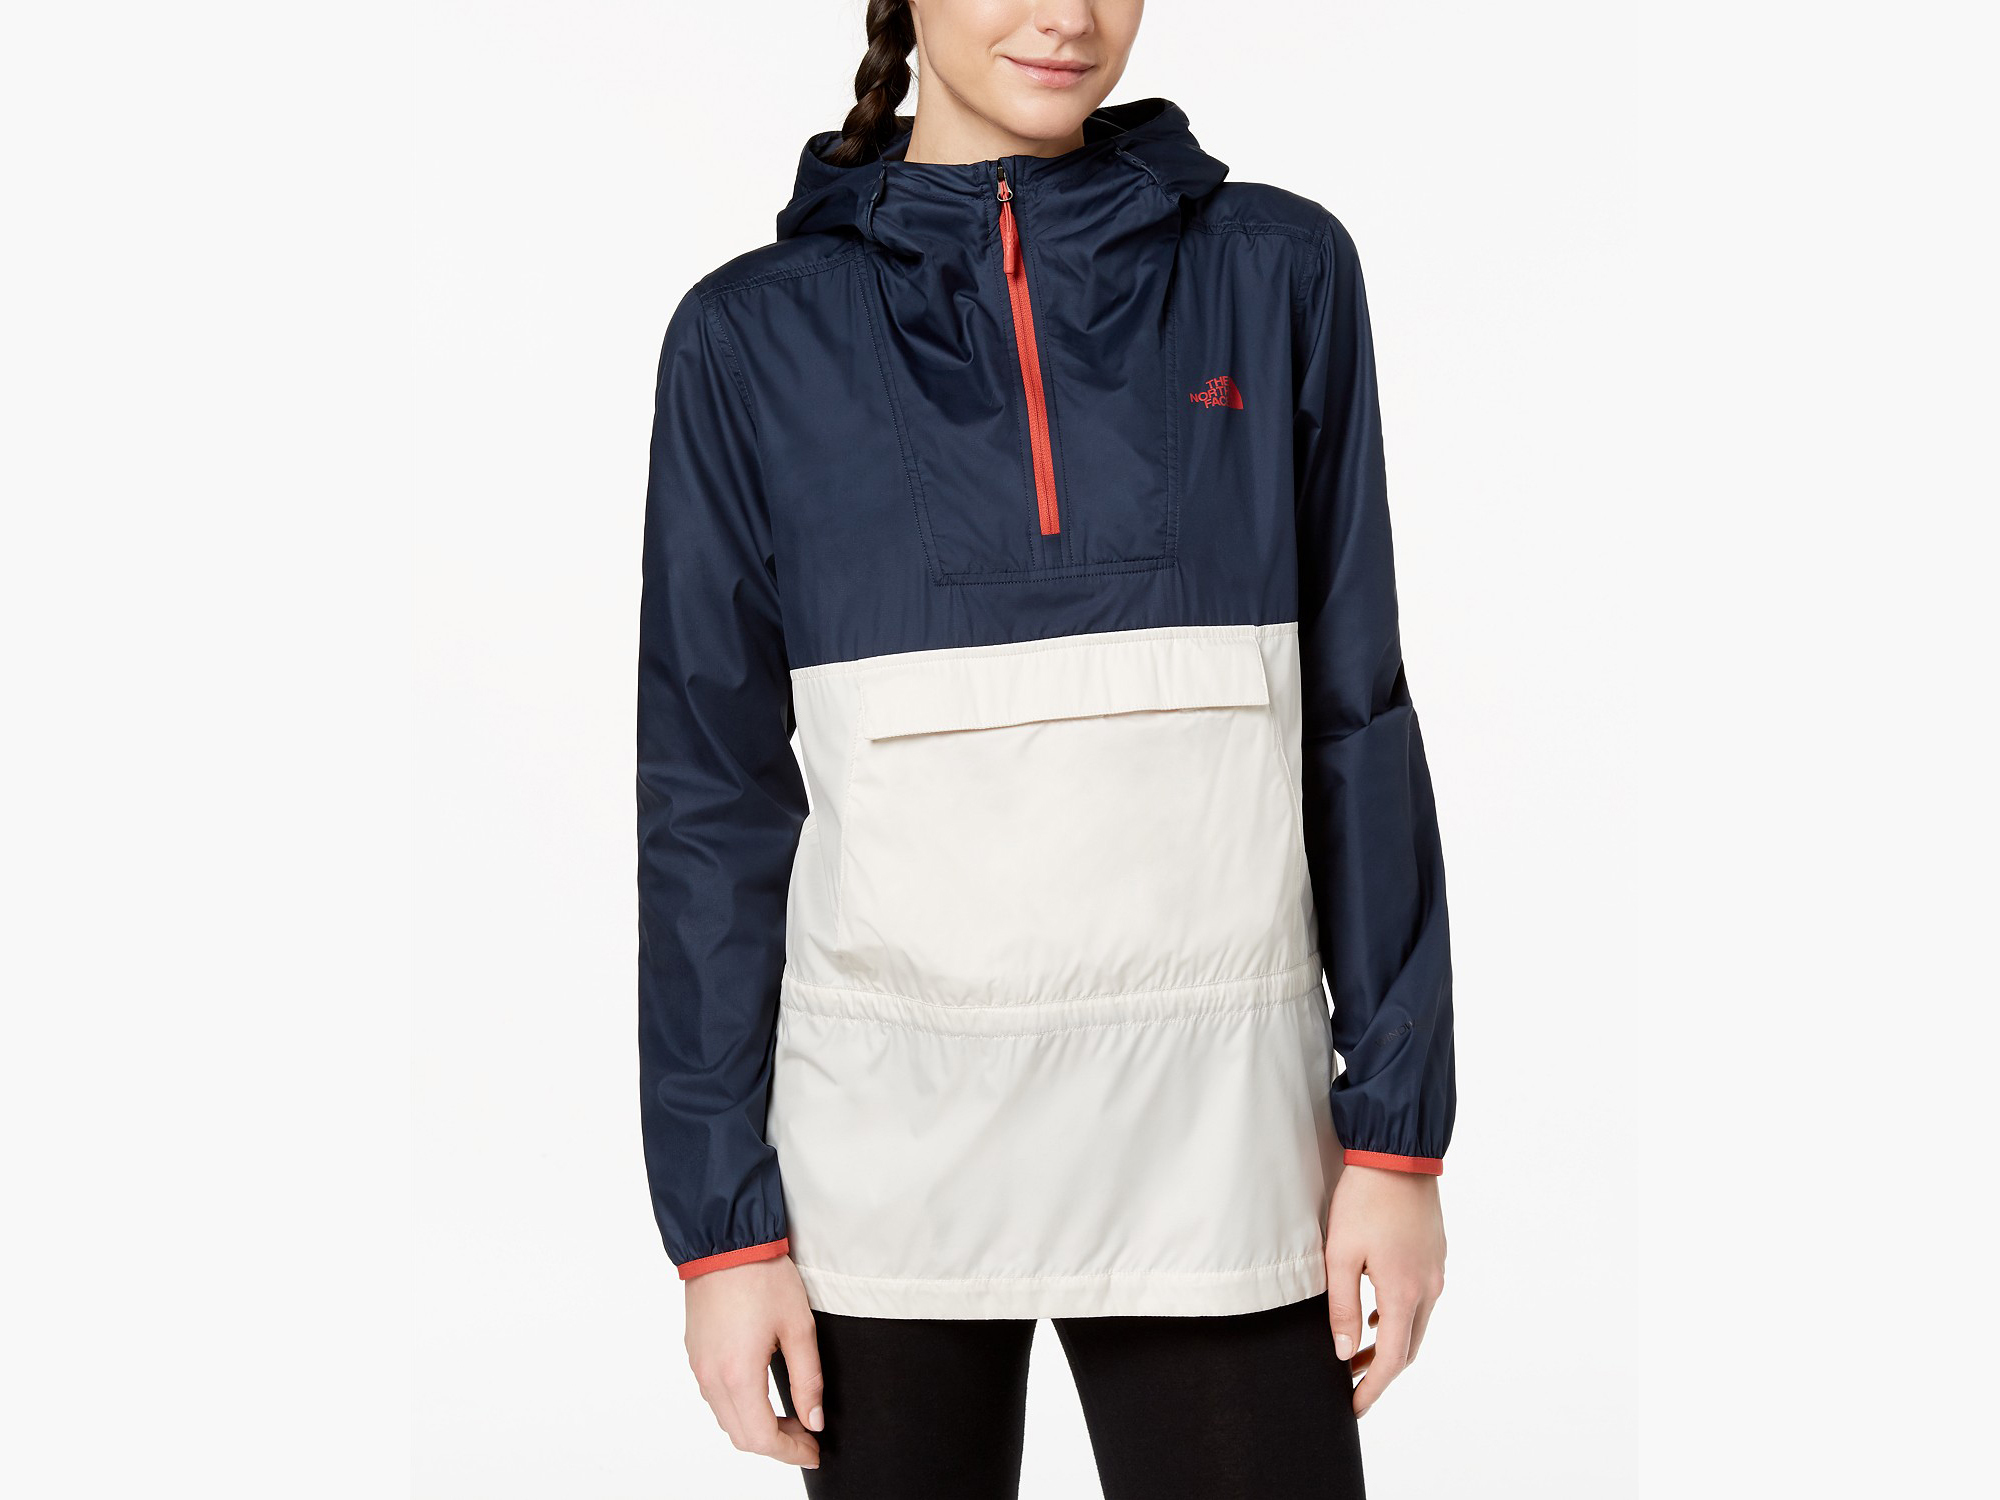 best workout clothes for women 10 northface_macys